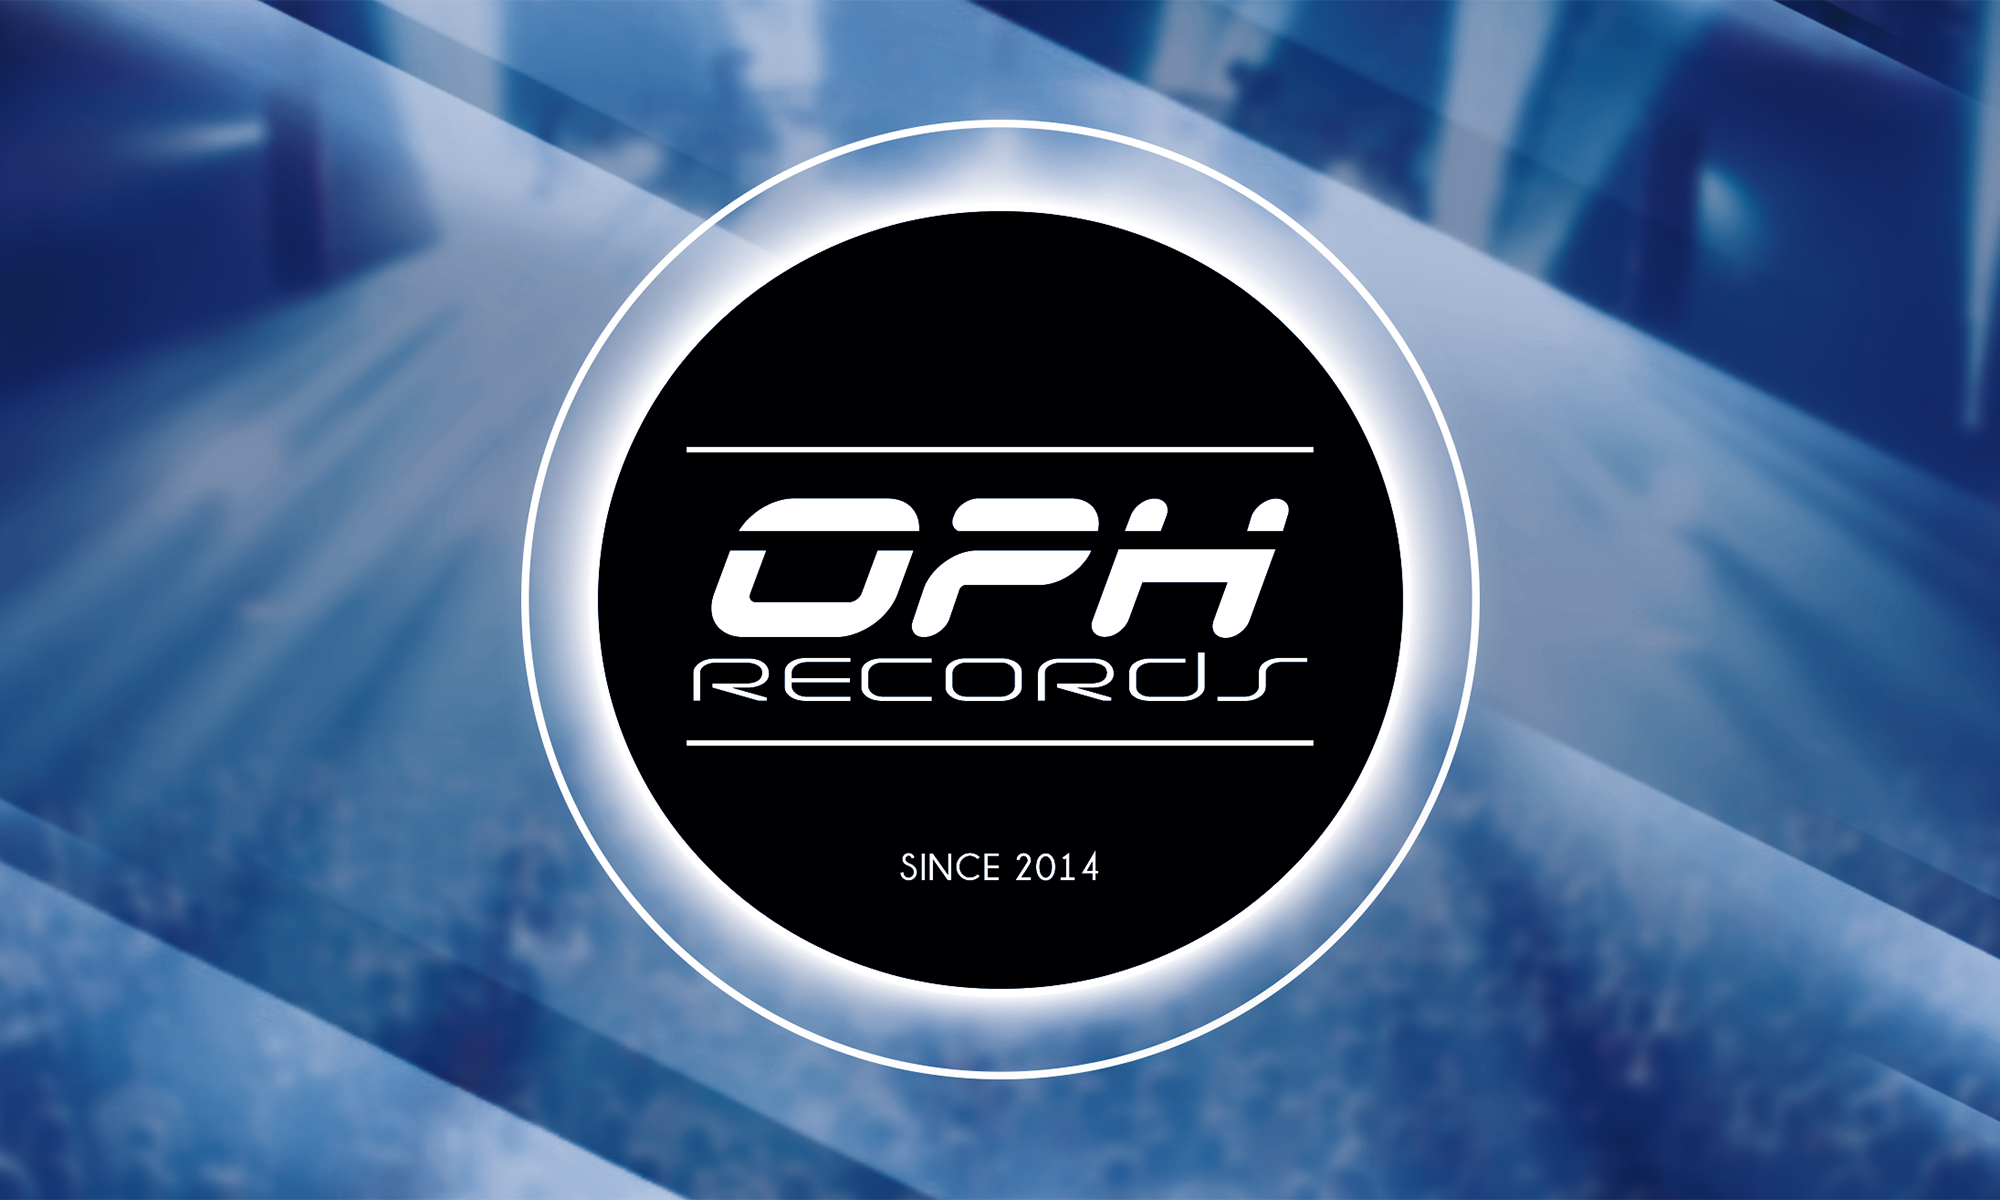 OPH Records